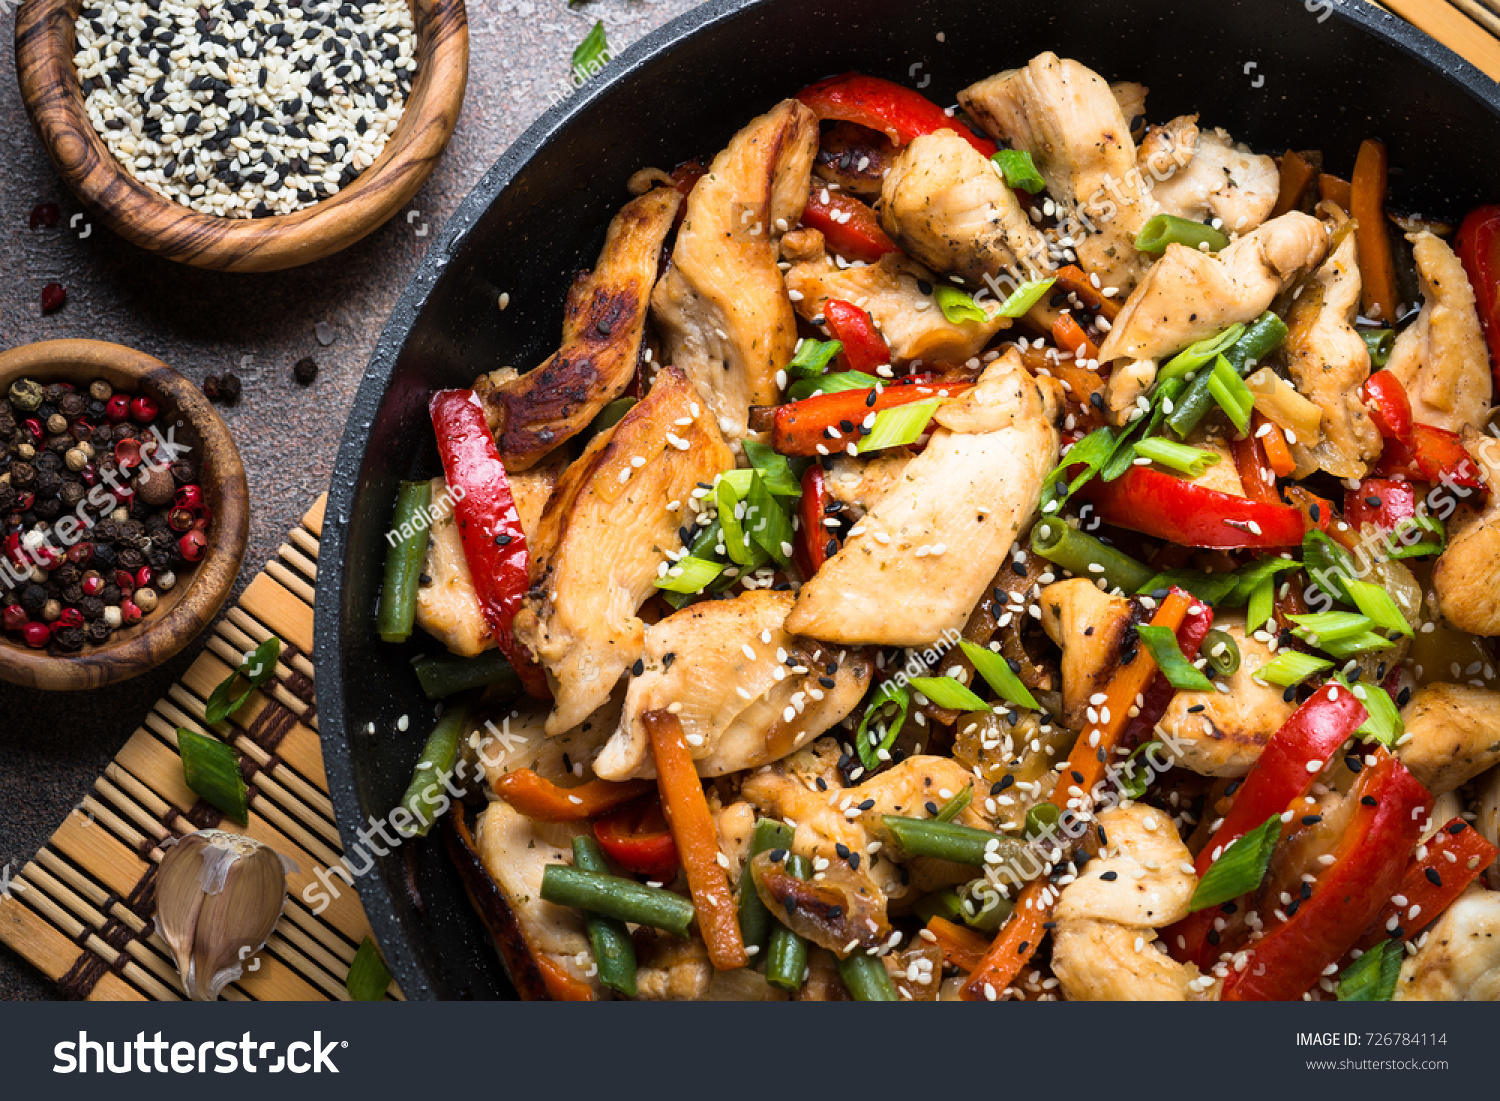 Chicken stir fry vegetables soy sause foto de stock libre de chicken stir fry with vegetables soy sause and sesame in the wok traditional chinese food forumfinder Images